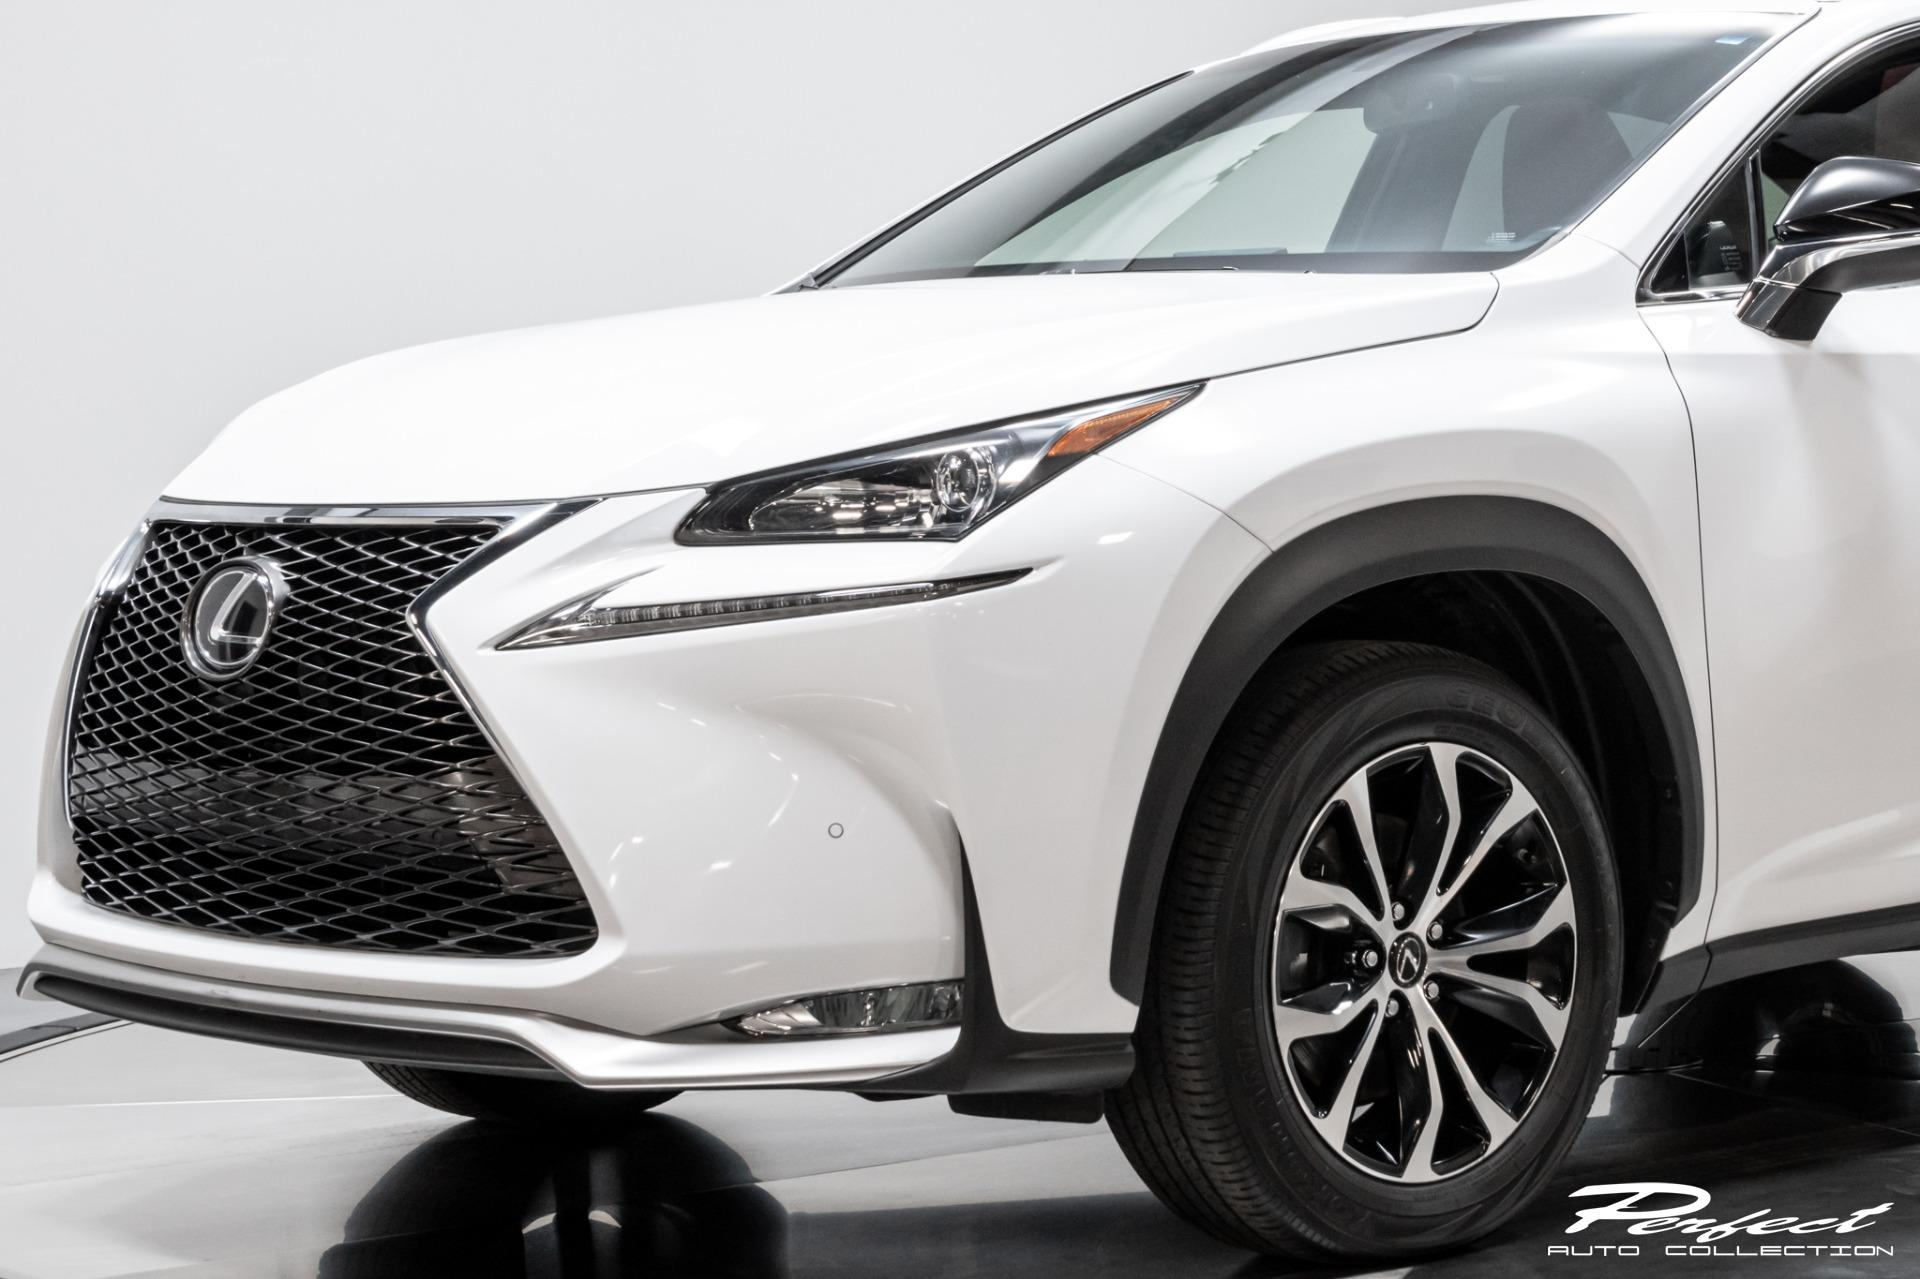 Used 2016 Lexus NX 200t F SPORT for sale Sold at Perfect Auto Collection in Akron OH 44310 3